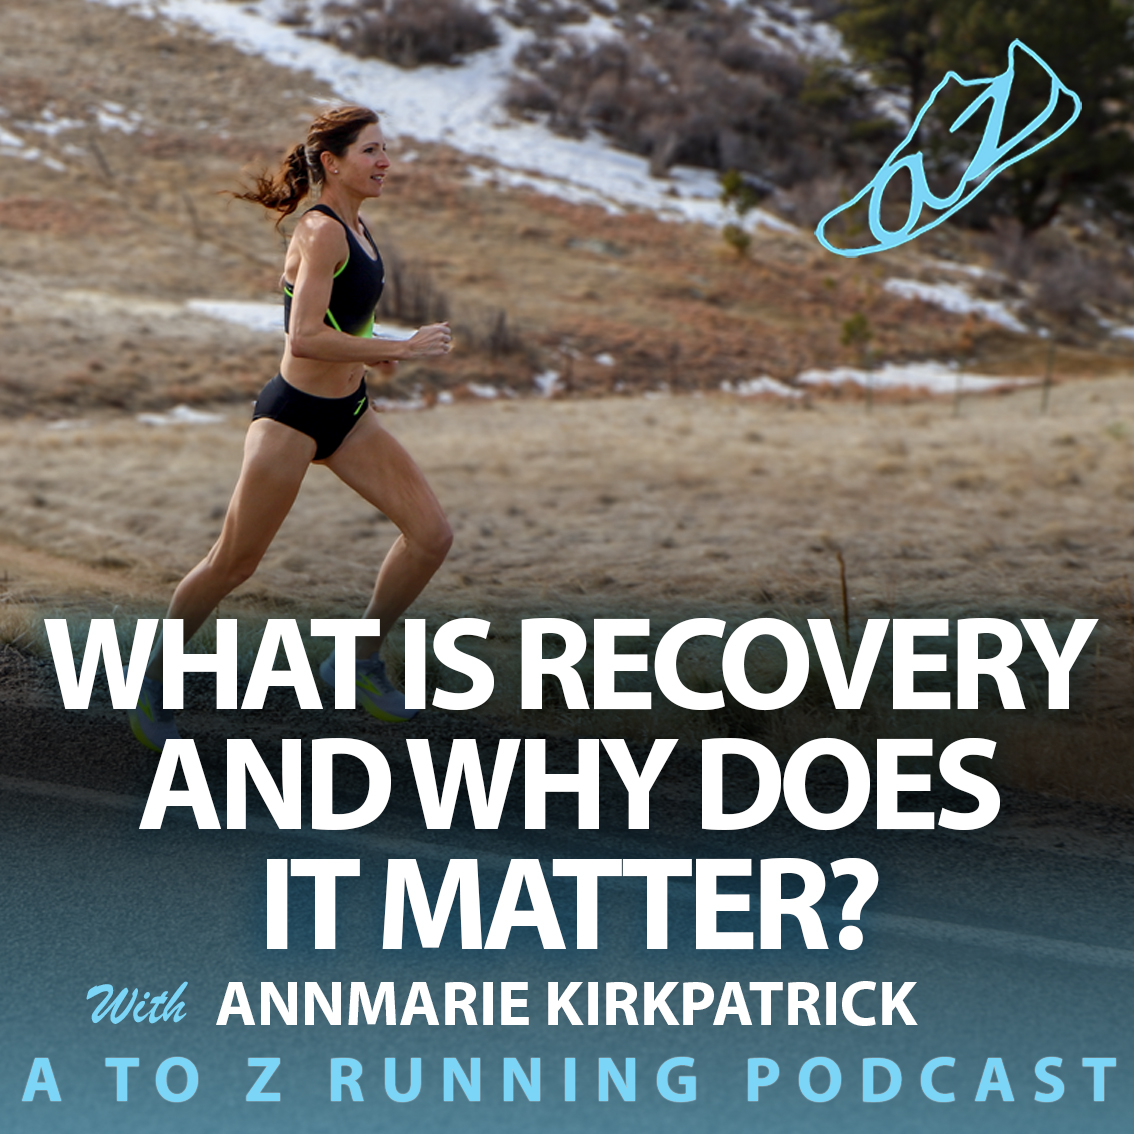 what is recovery and why does it matter?